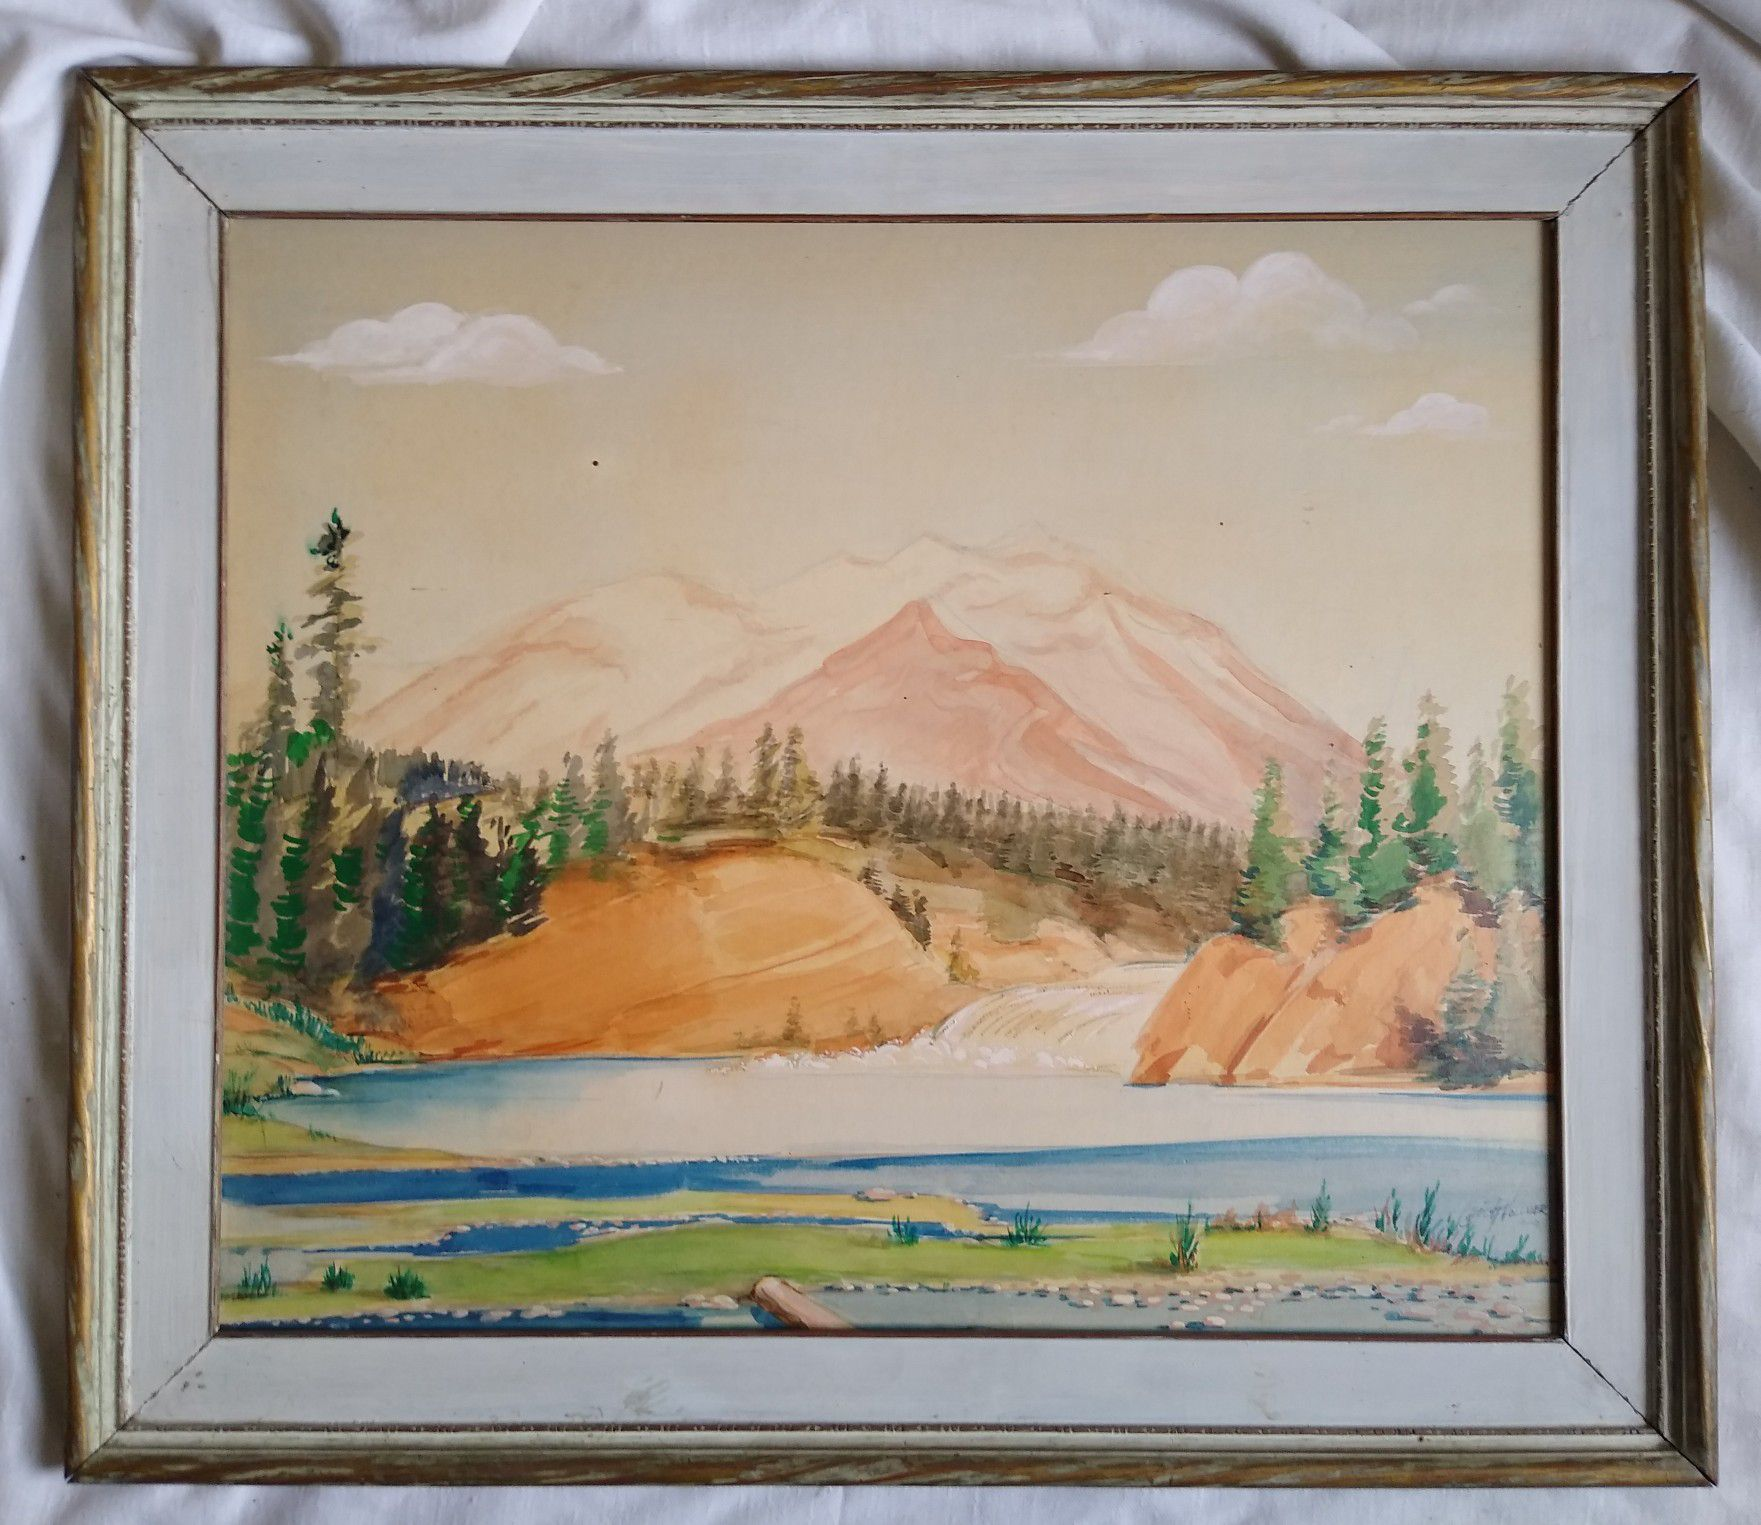 A vintage Mid-century Mod mixed media Mountain landscape Painting by y Carl H. Vollmer dated 1949